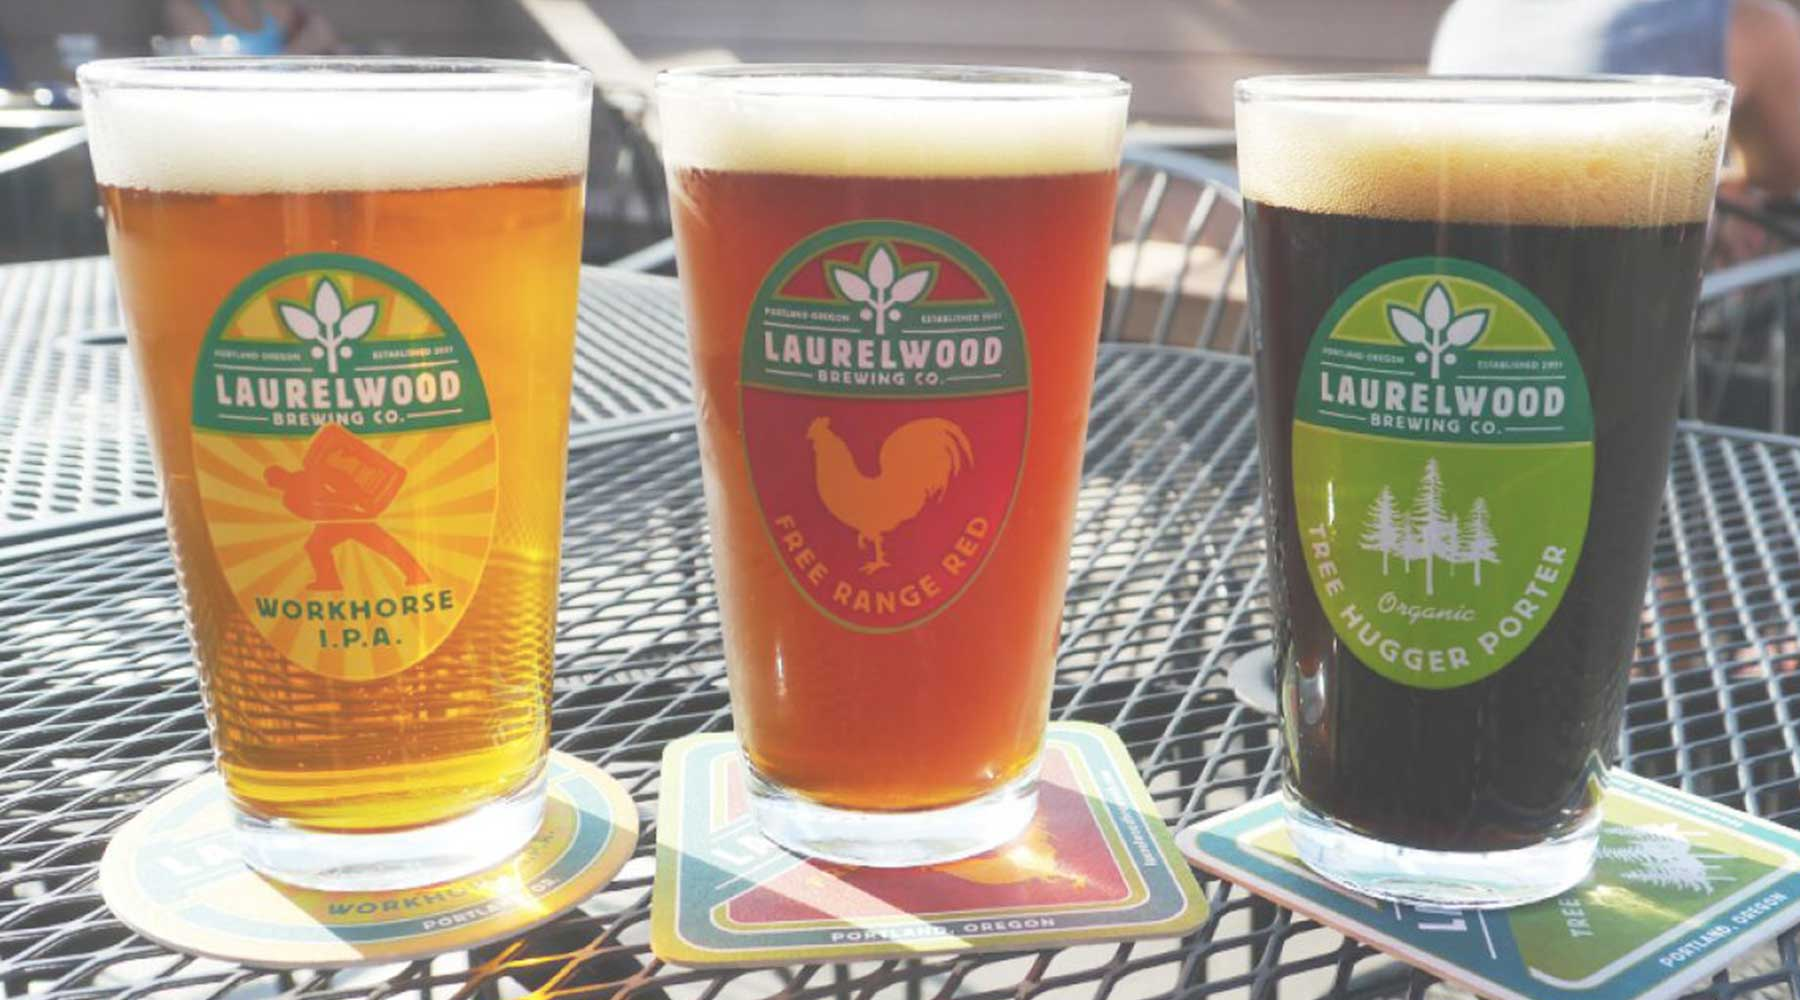 Laurelwood Public House & Brewery | Just Wine